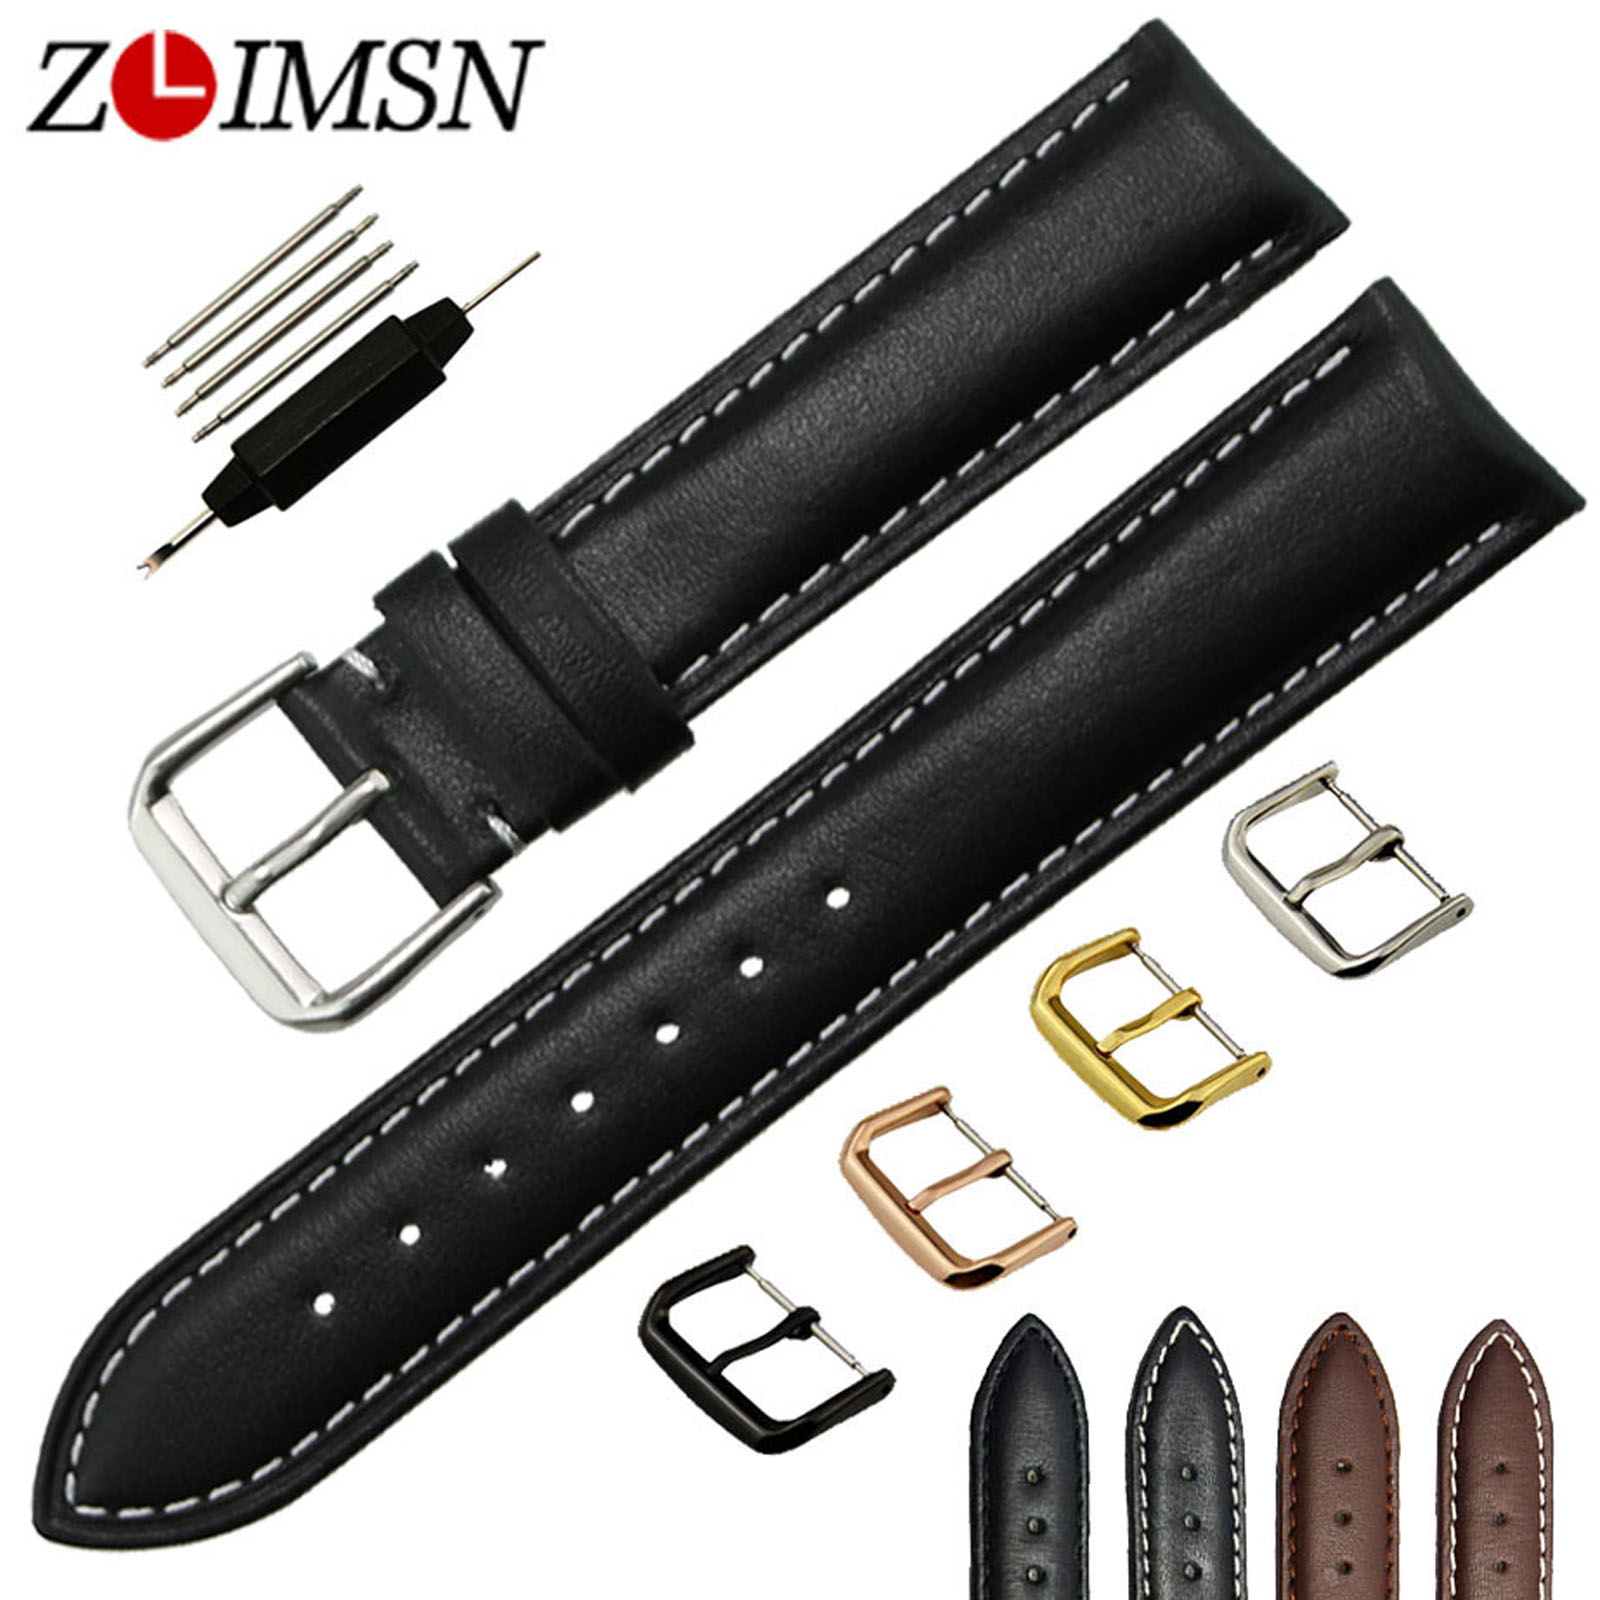 ZLIMSN Smooth Genuine Leather Watch Band Brown Black 18 20 22 24mm Watchbands Stainless Steel Pin